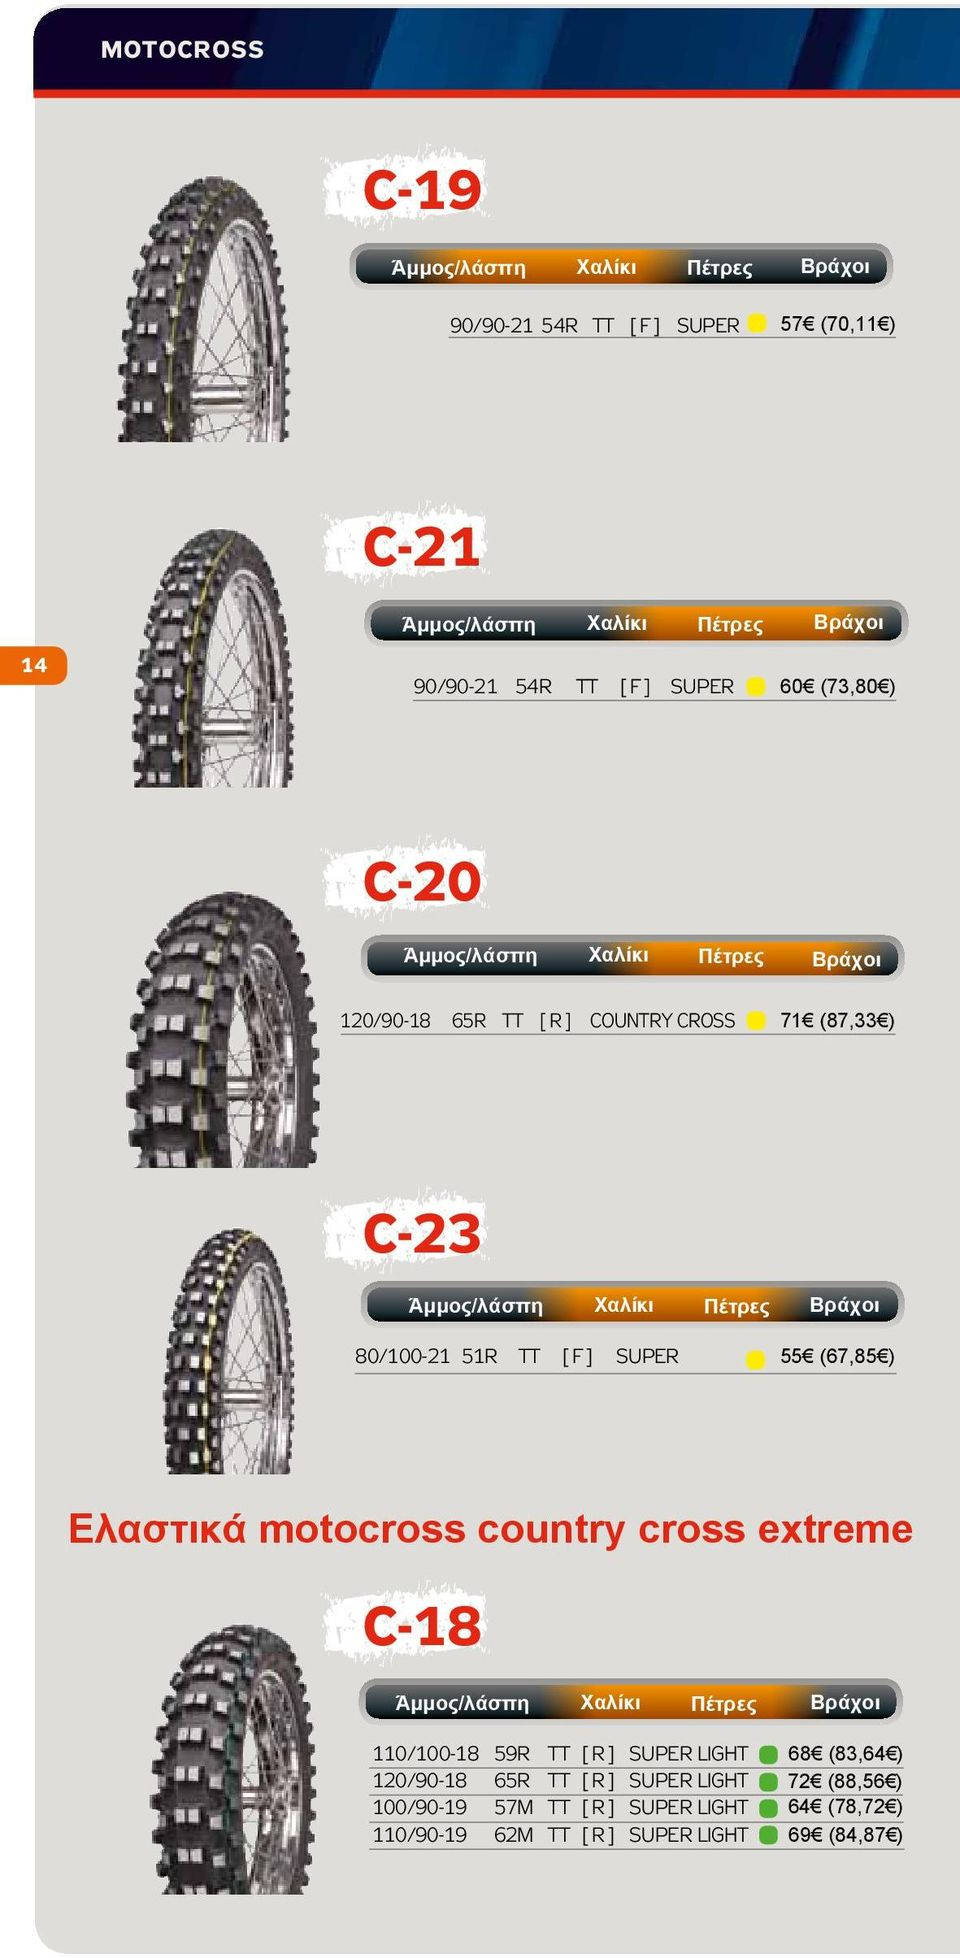 motocross country cross extreme C-18 110/100-18 59R TT [ R ] SUPER LIGHT 120/90-18 65R TT [ R ] SUPER LIGHT